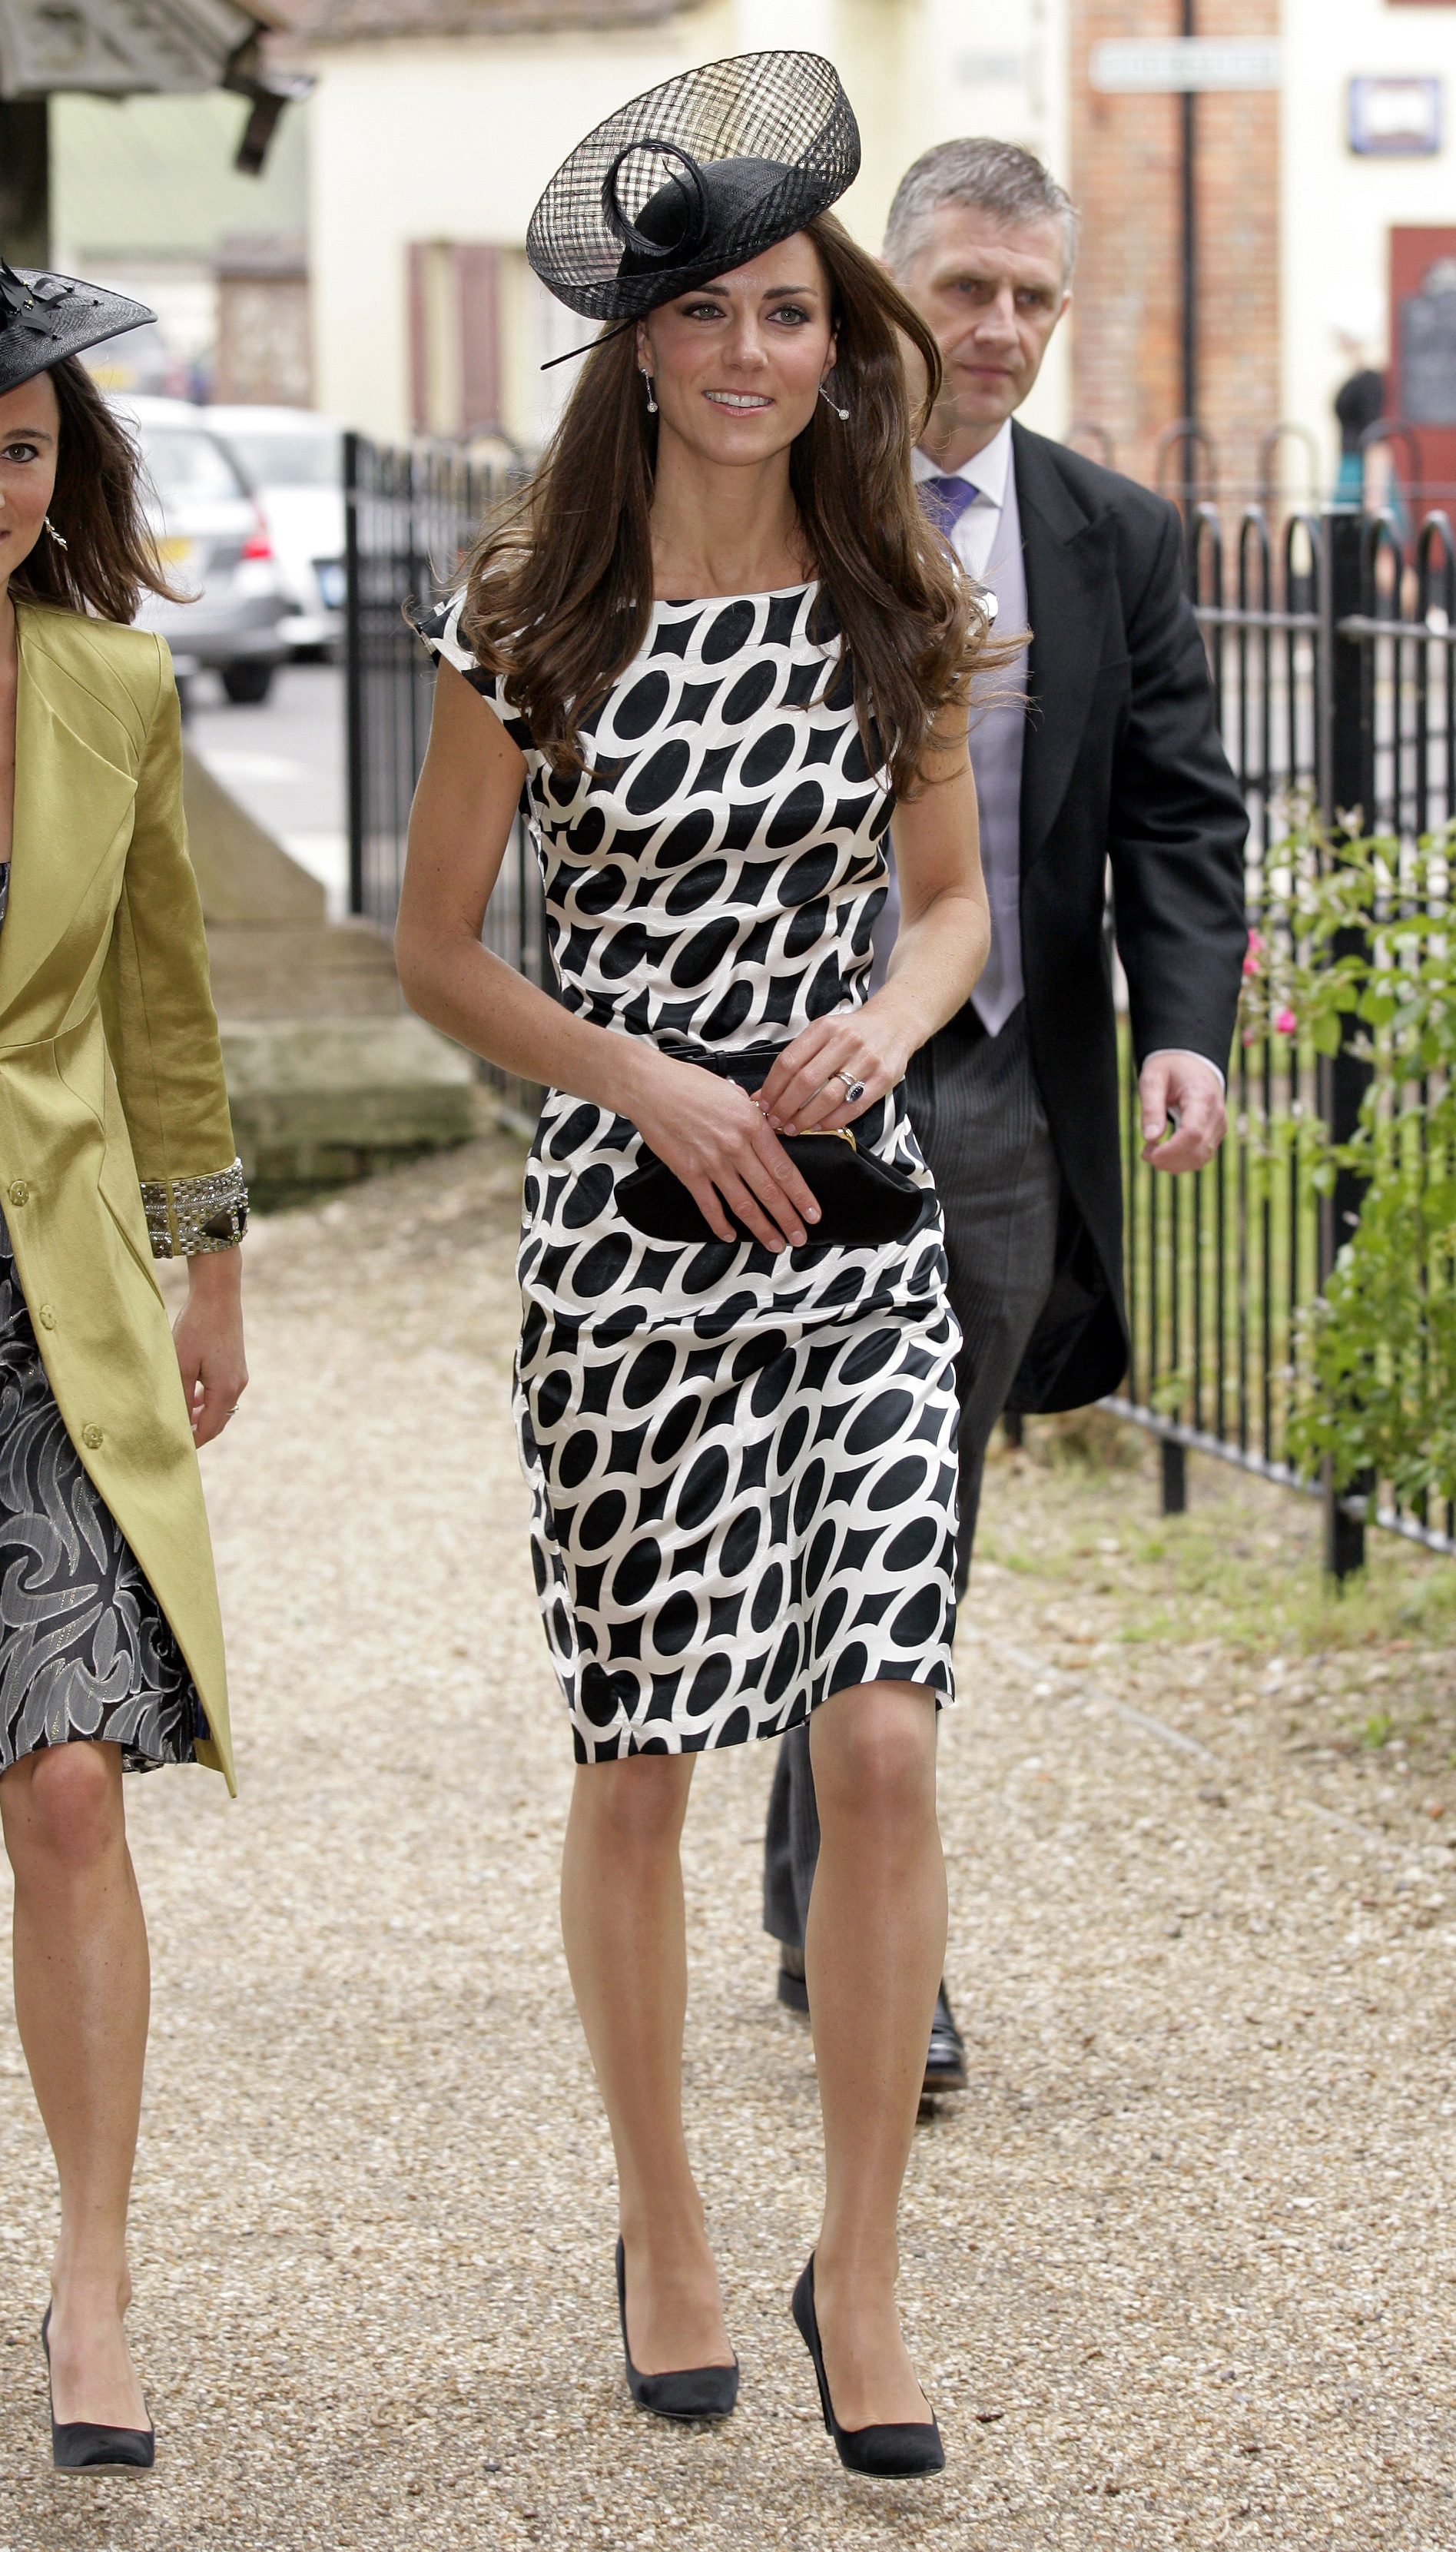 Prince William And Kate Fashion Show